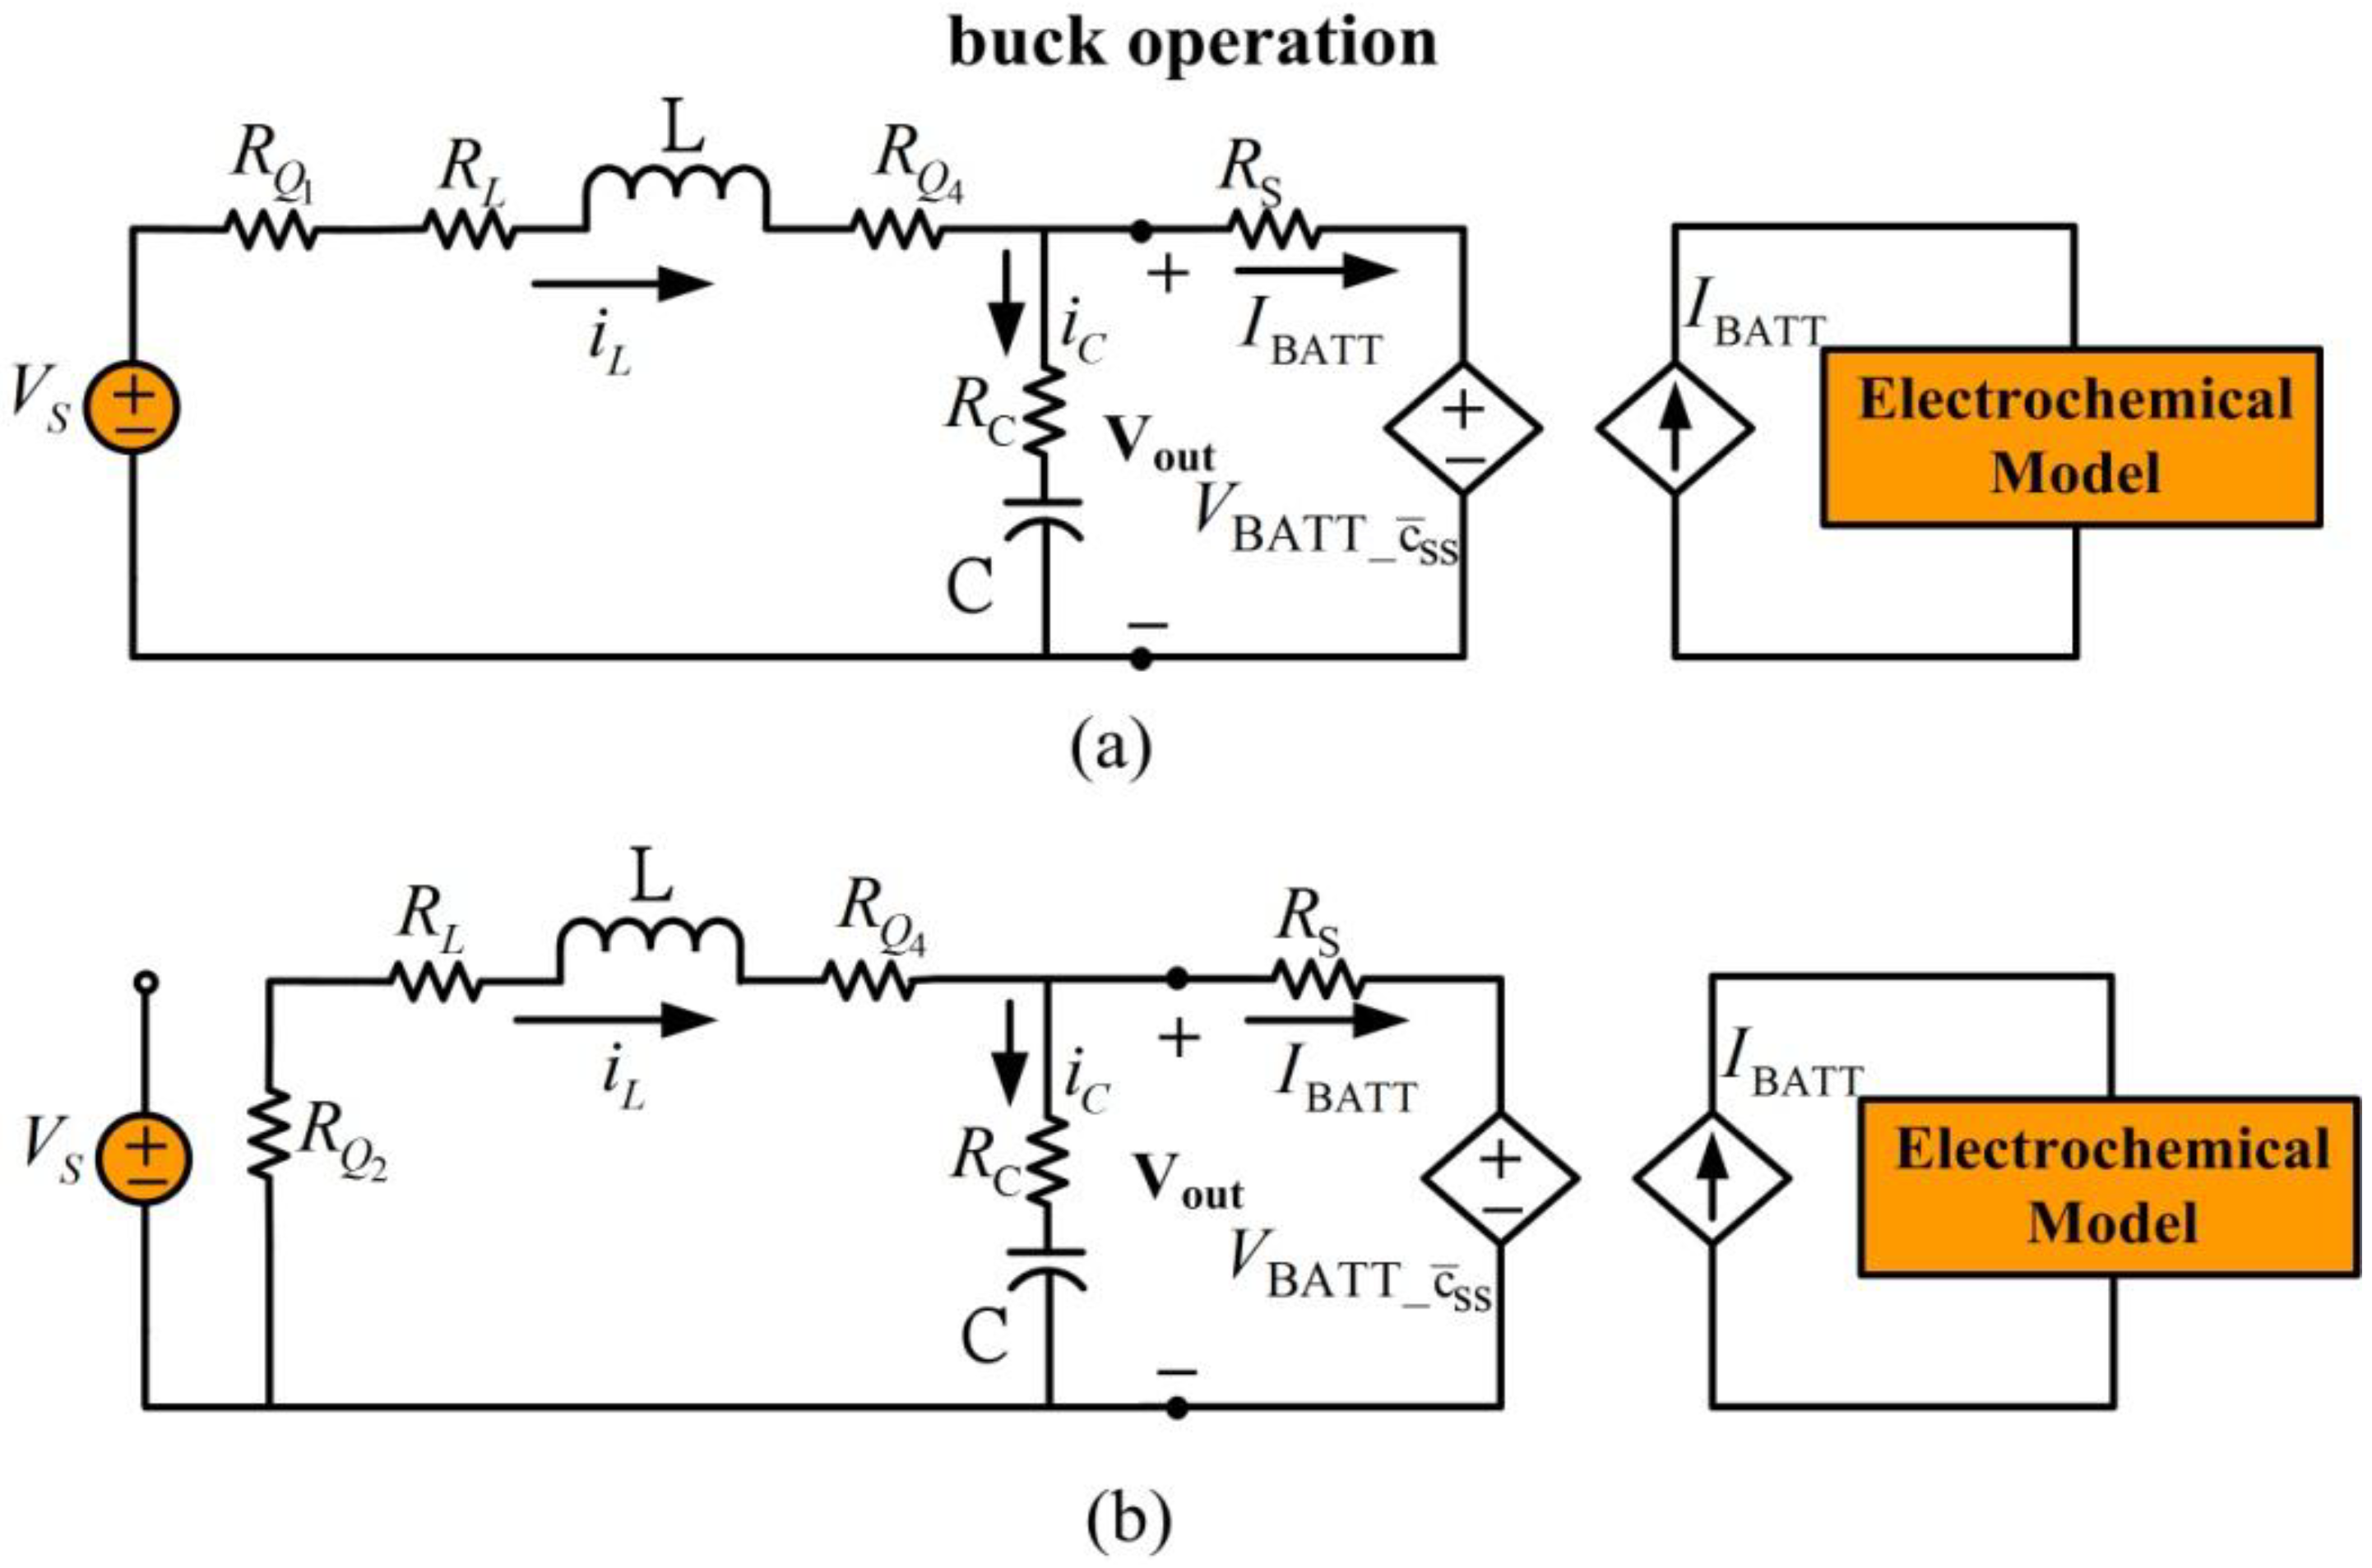 Energies Free Full Text Li Ion Battery Charging With A Buck Liion Charger Circuit Diagram No